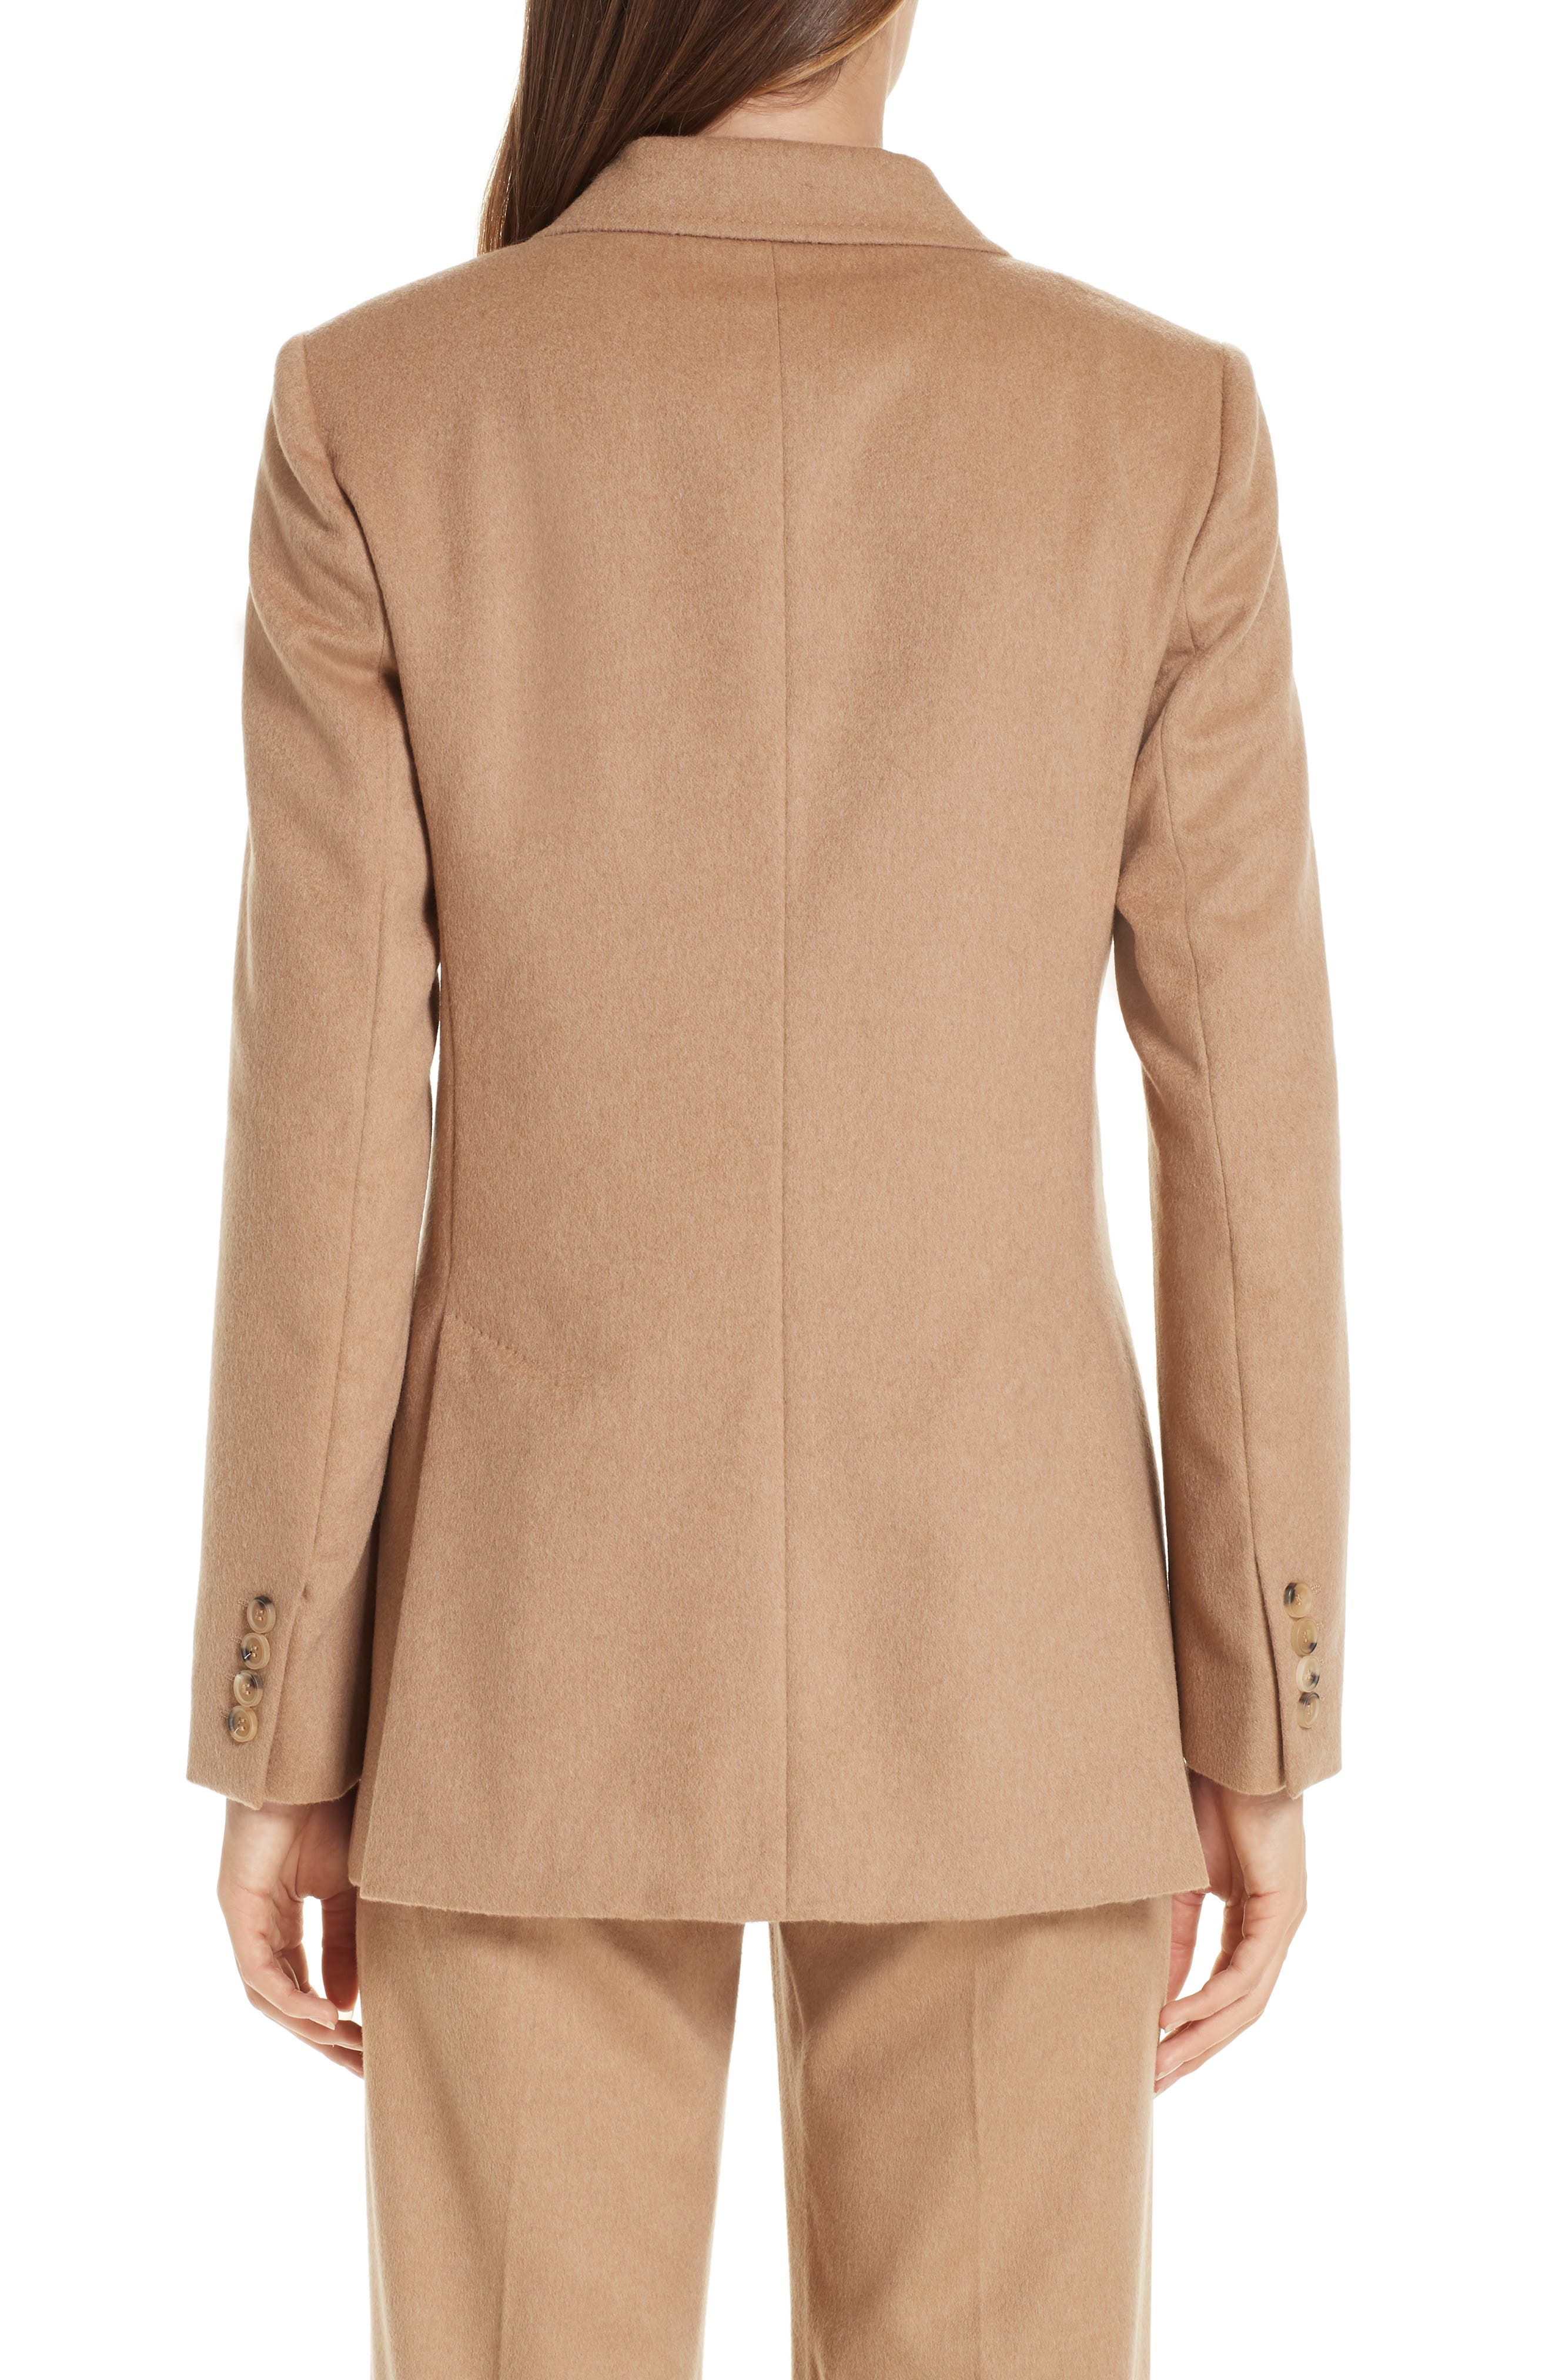 Panteon Camel Hair Jacket,                             Alternate thumbnail 2, color,                             232